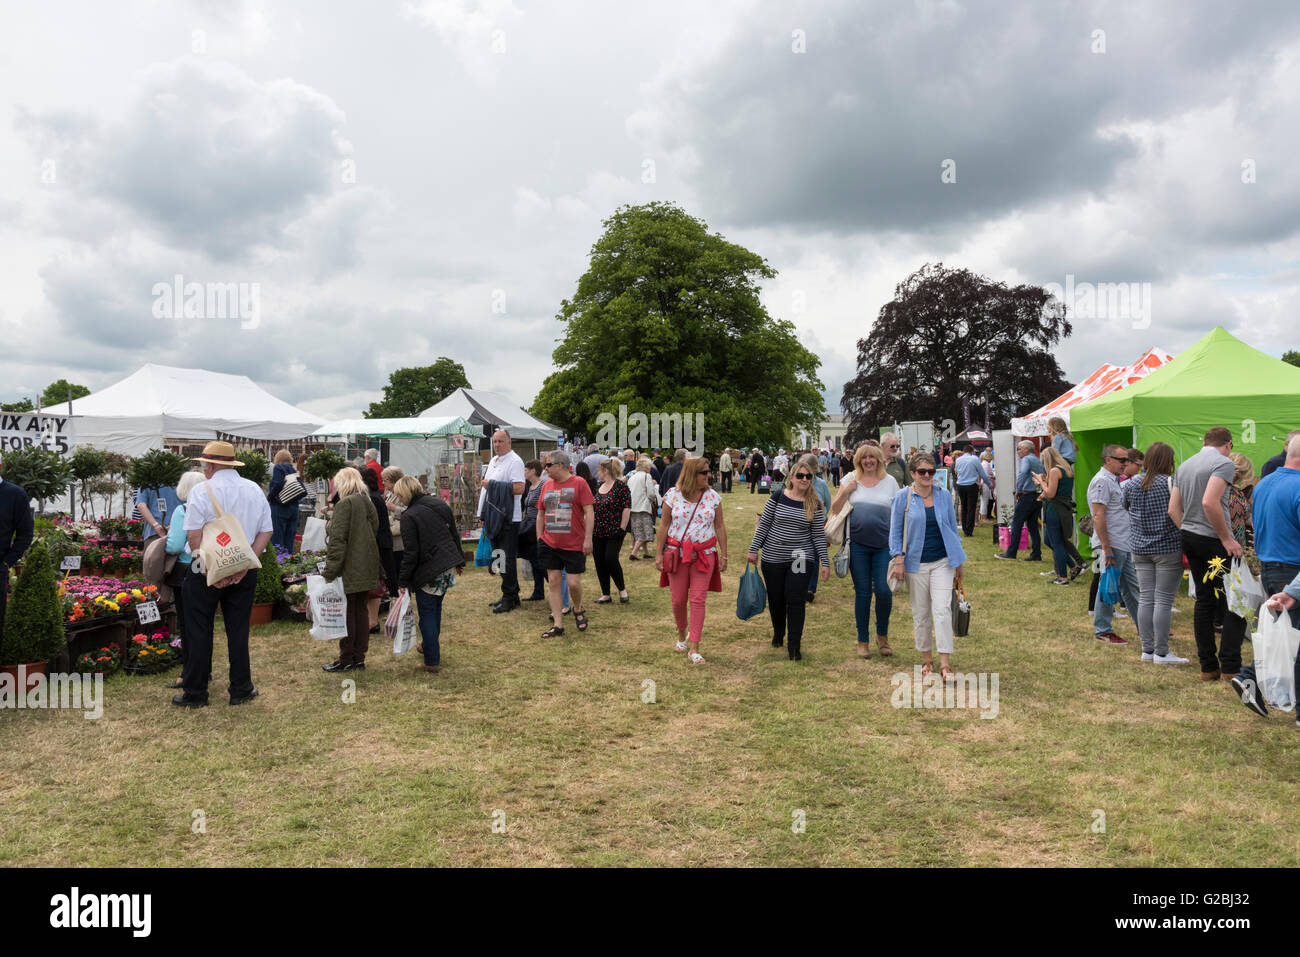 People at a country show UK in overcast weather - Stock Image